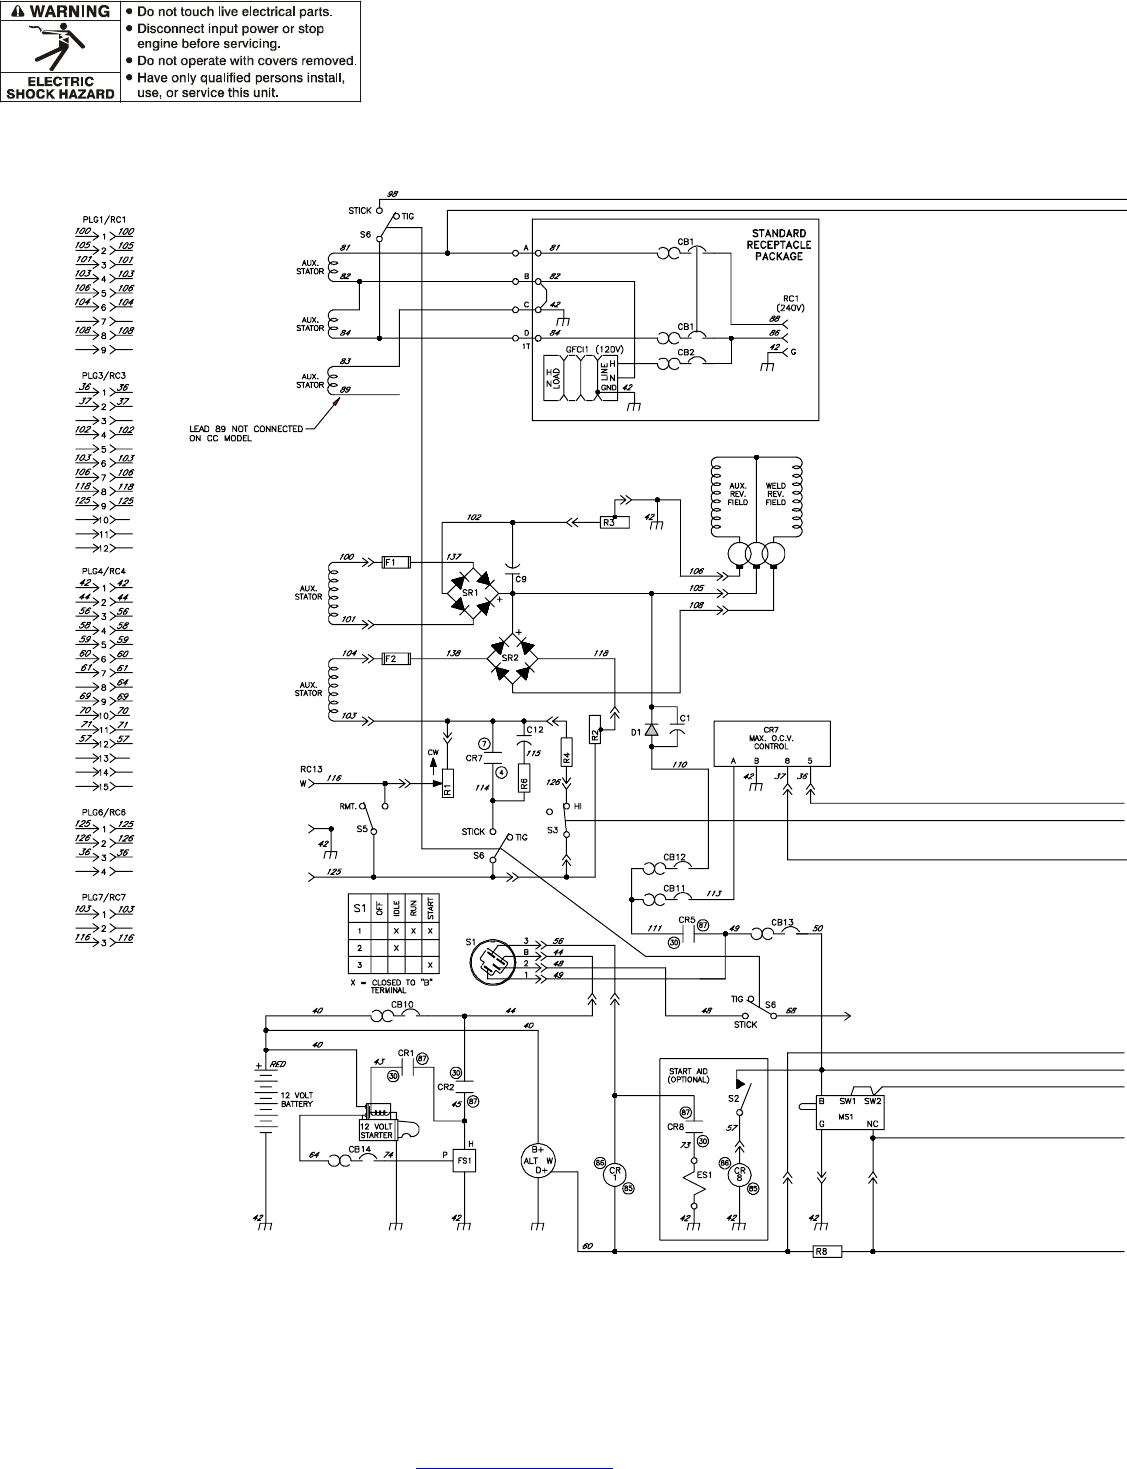 76c796b7 d8c0 43e7 b6d5 812d0c2f0712 bg52 page 82 of miller electric welding system big blue 602dr user Basic Electrical Wiring Diagrams at nearapp.co